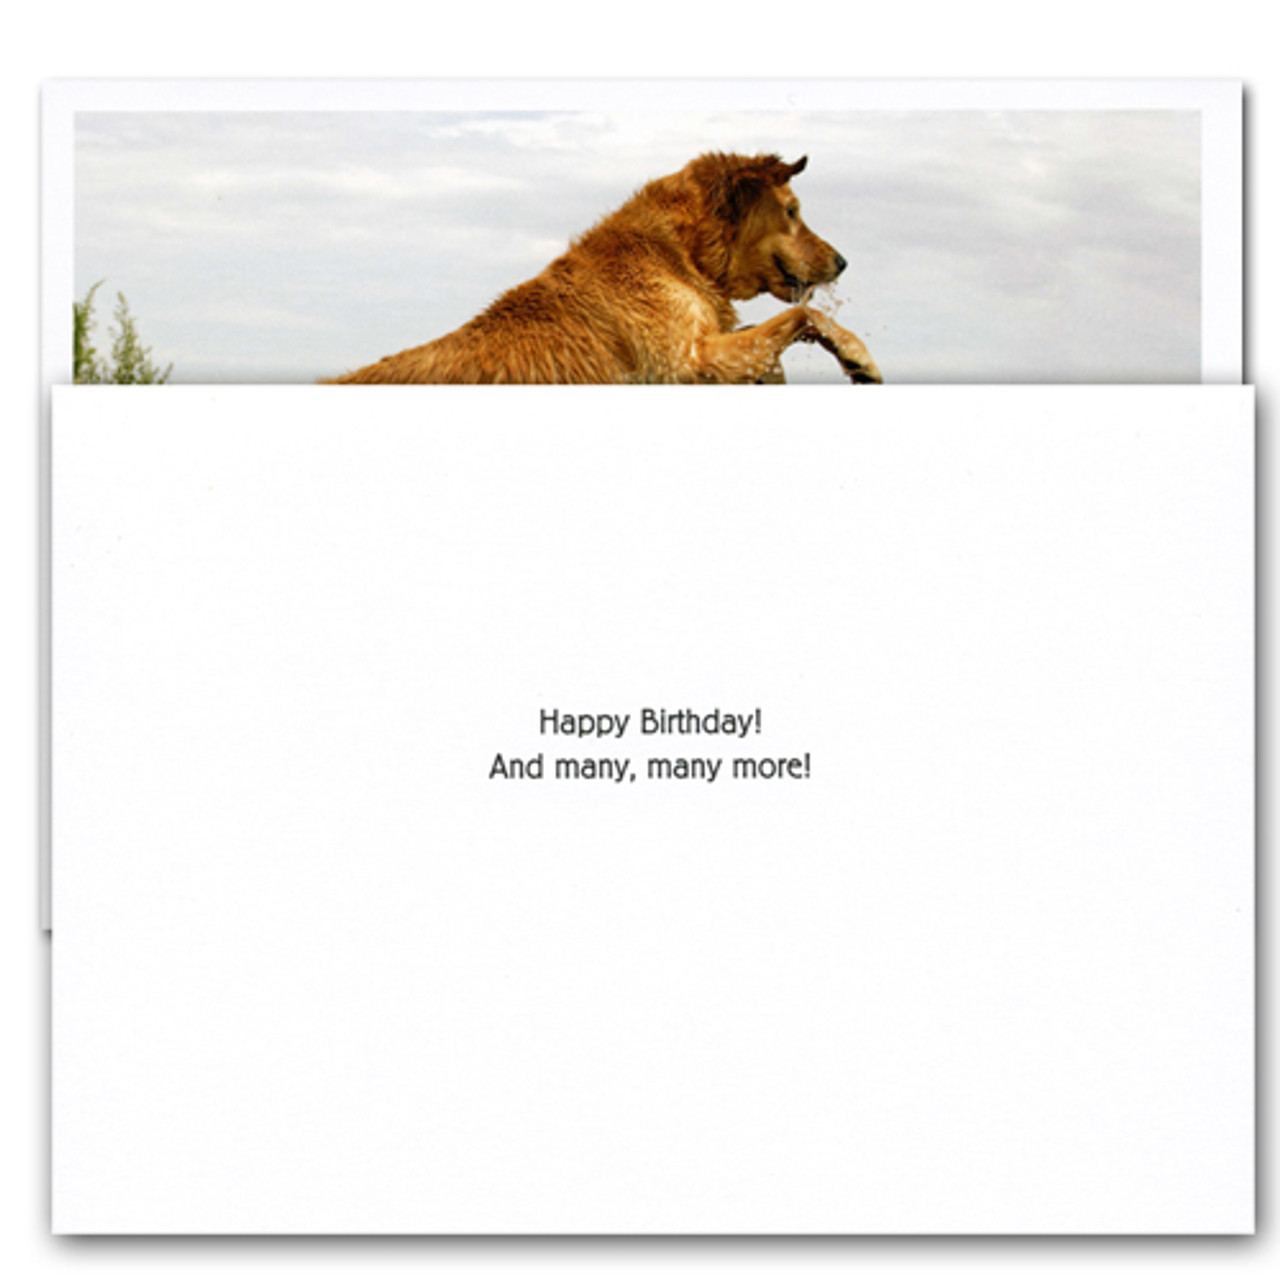 """Ogden Nash quotation card inside with the words """"Happy Birthday! and Many, many, more!"""""""